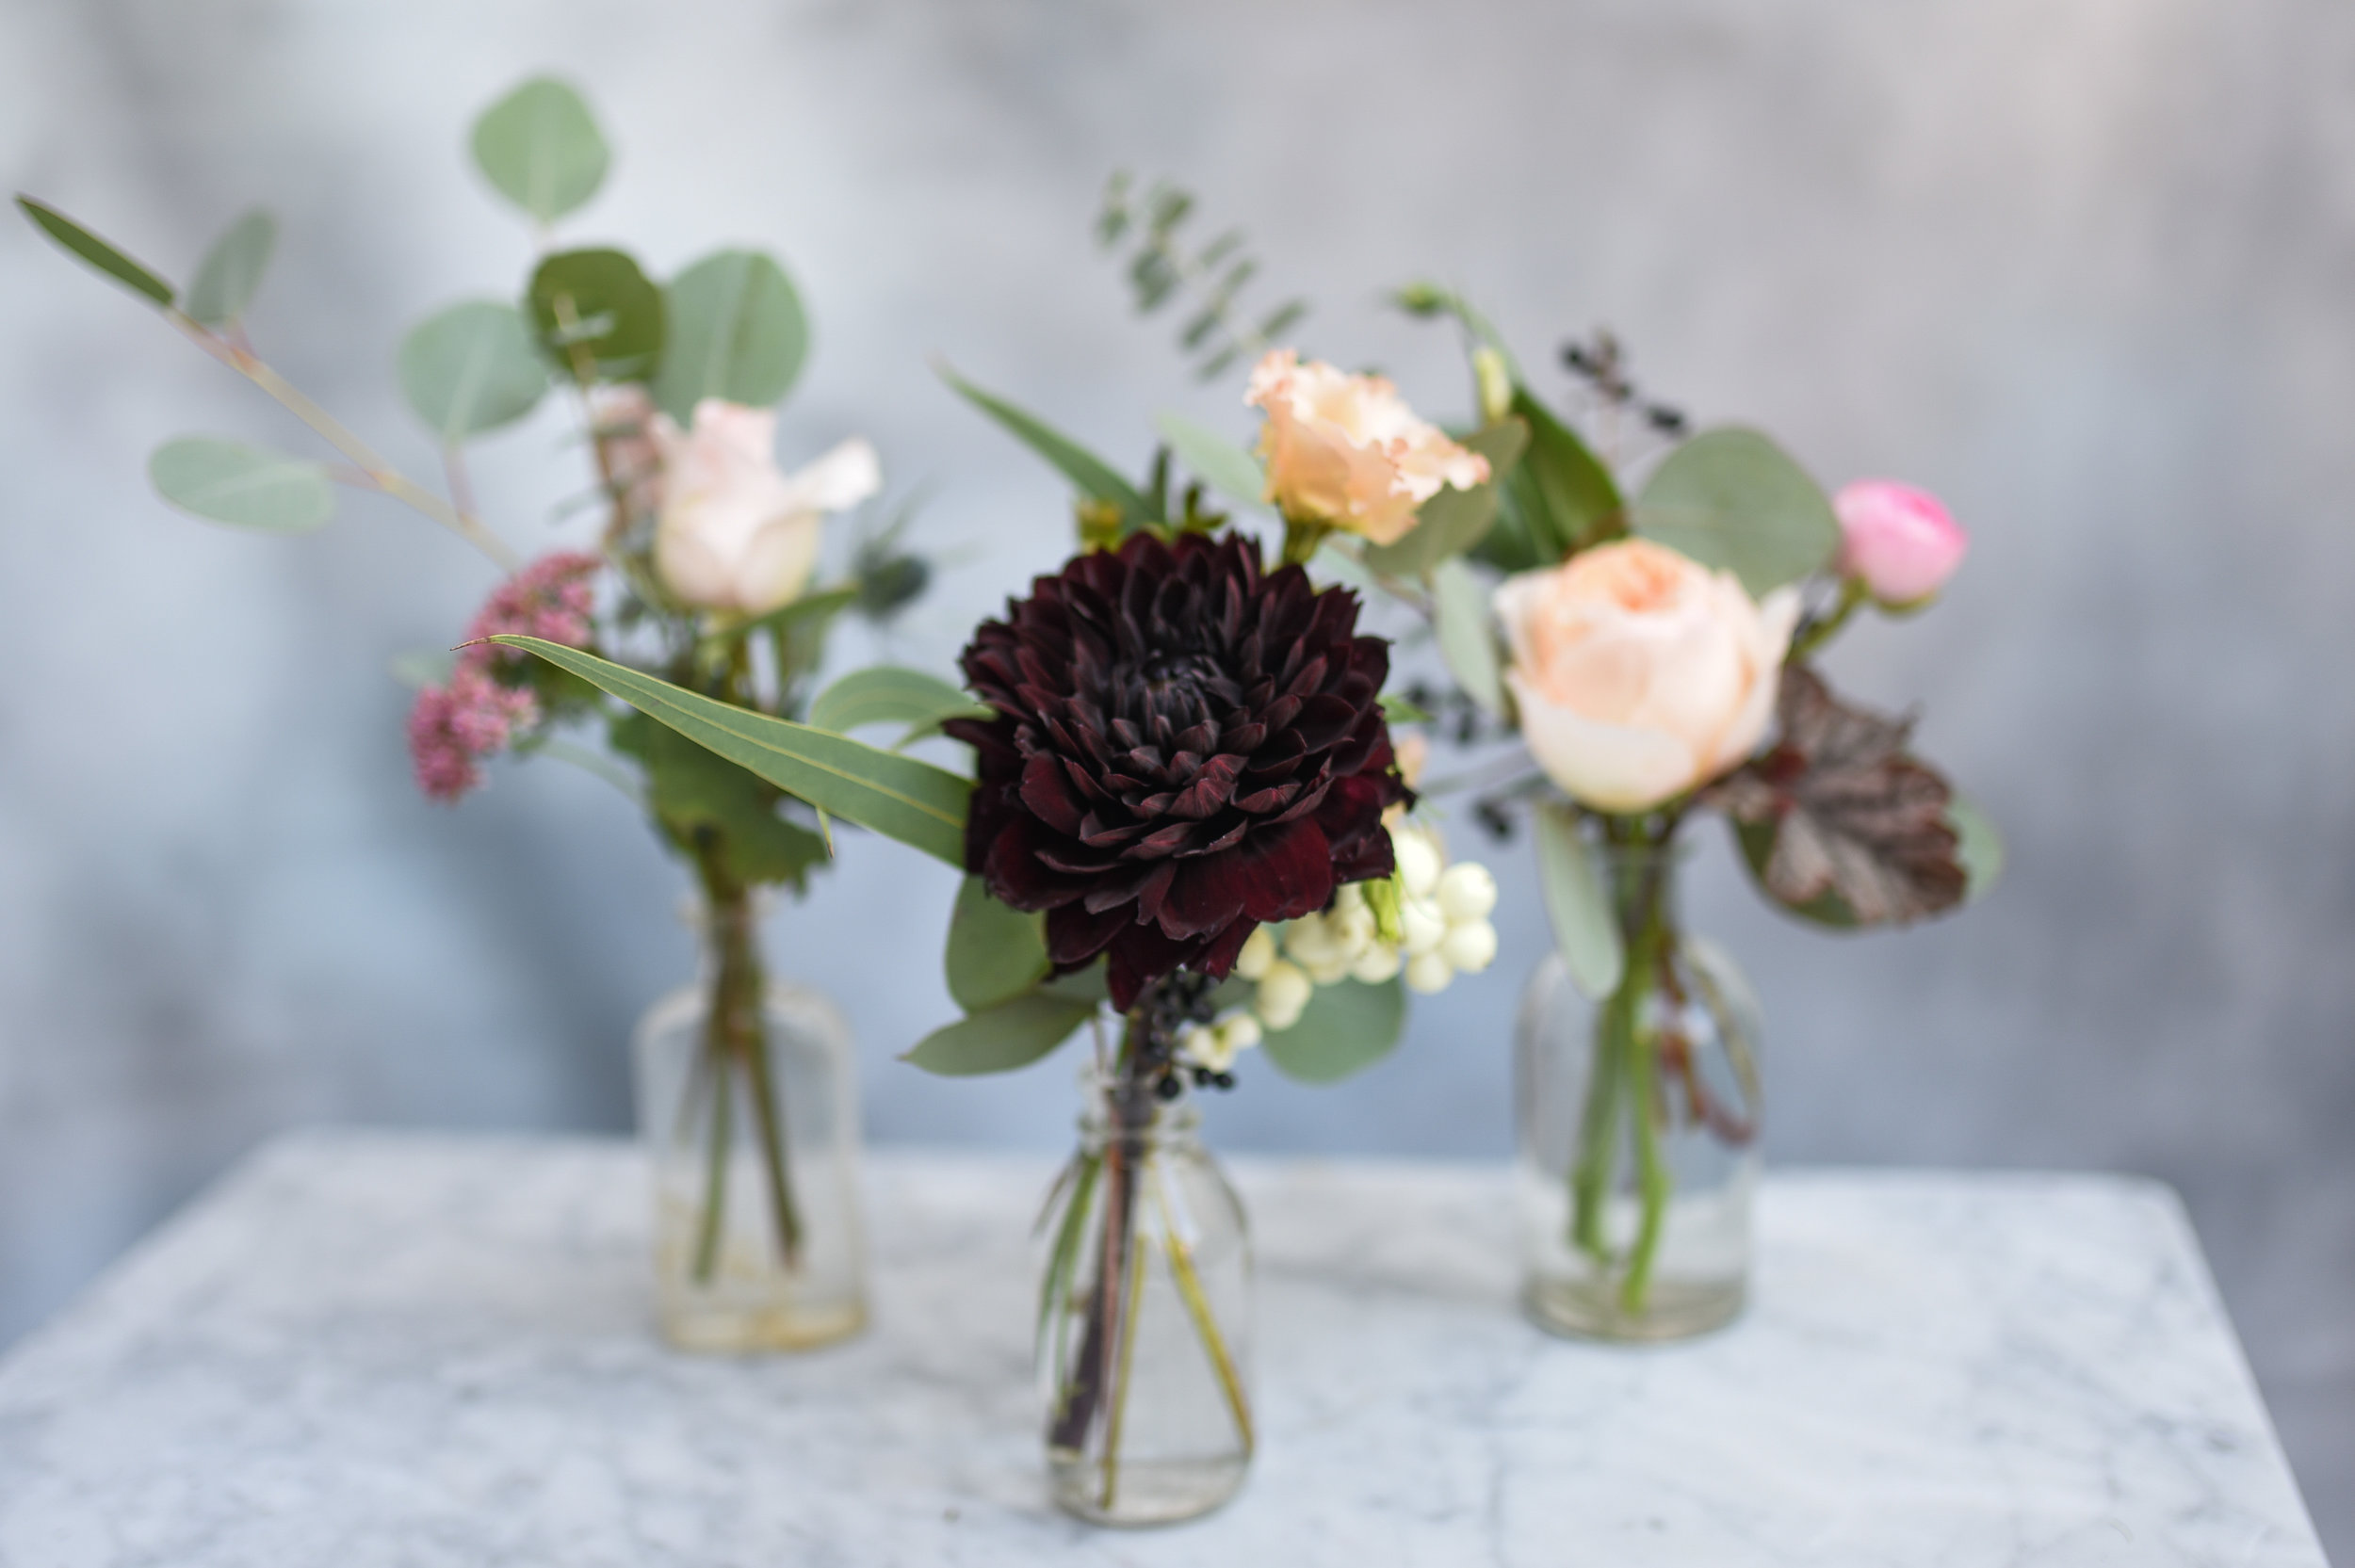 Light roses and dark dahlias are a pretty combination with the softly blue eucalyptus